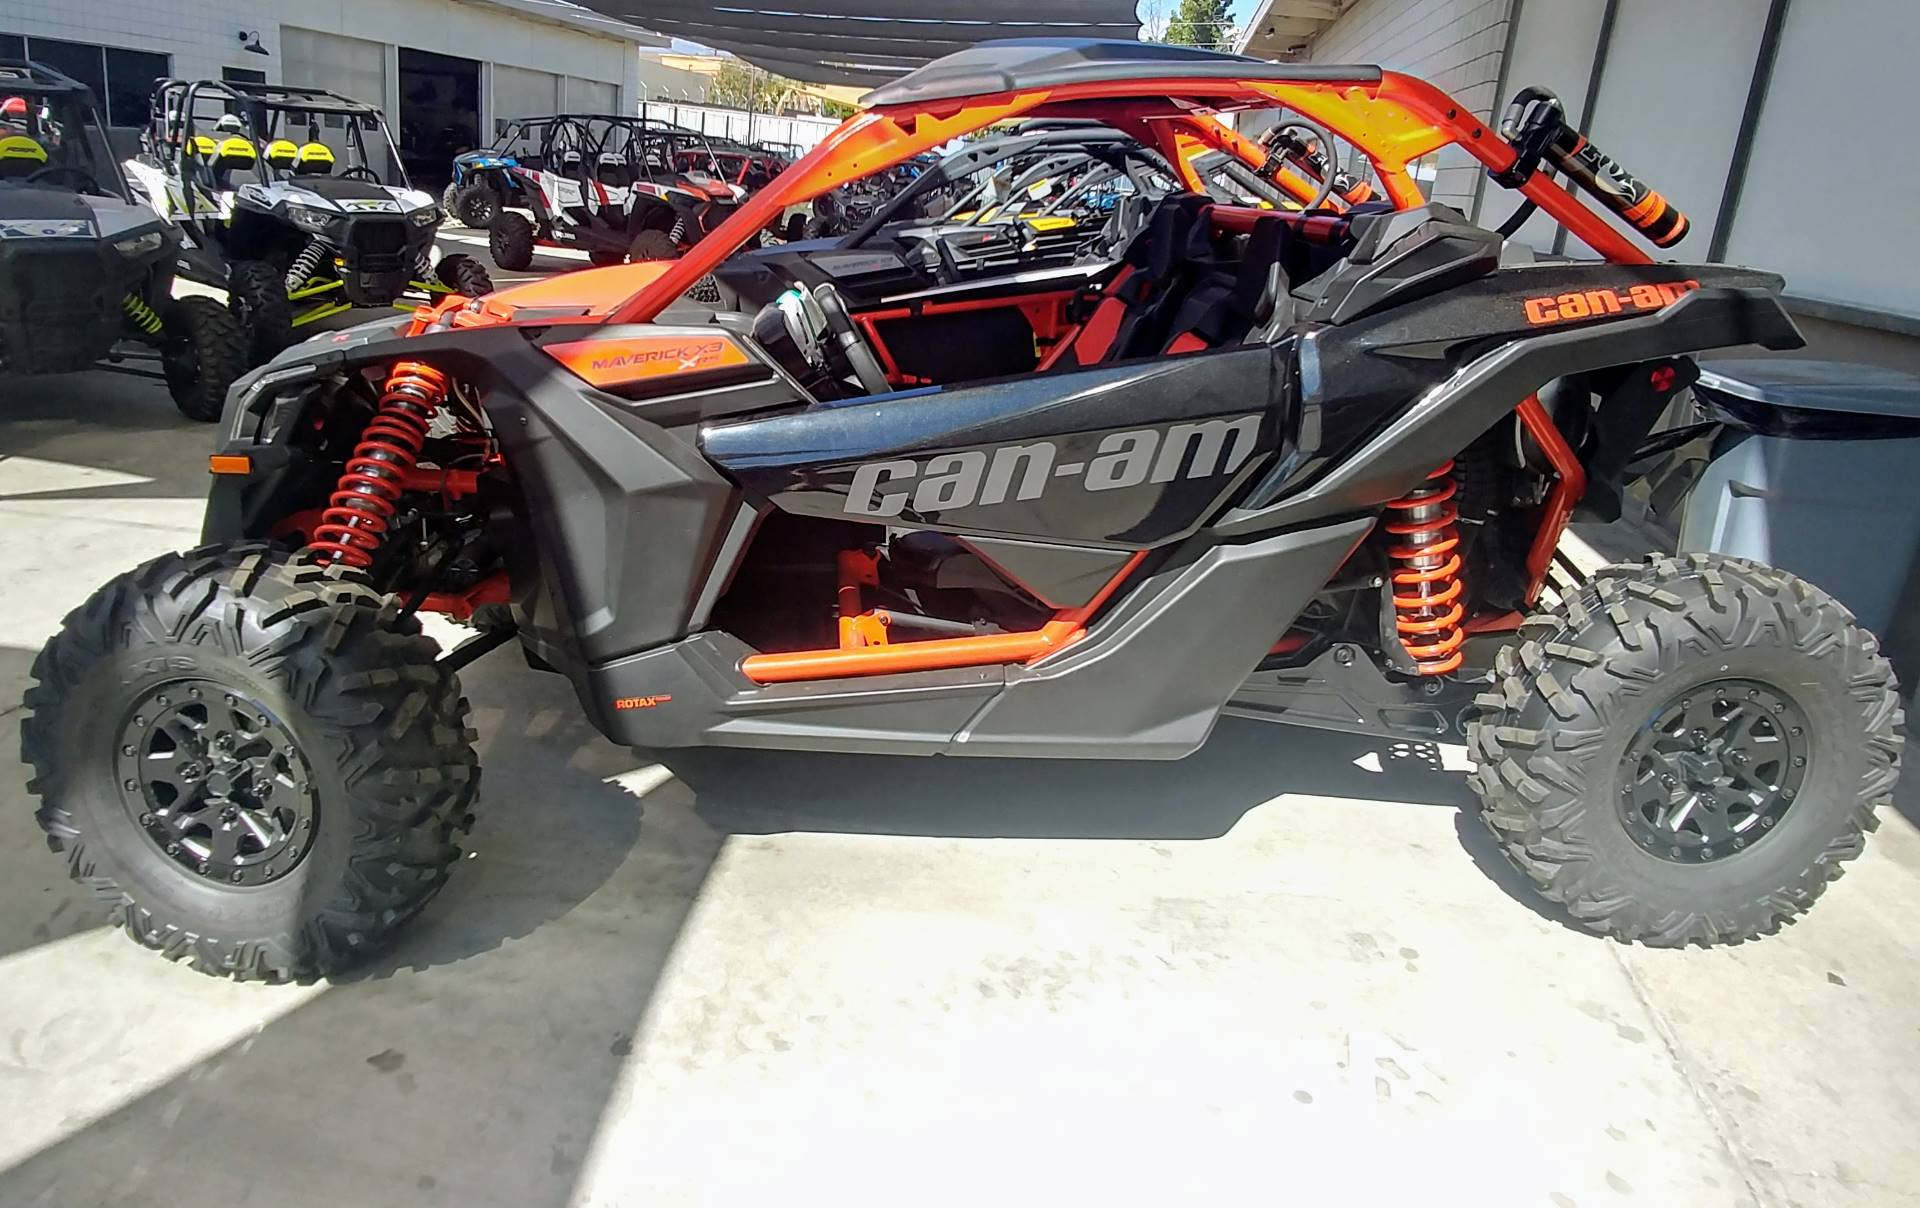 2018 Can-Am Maverick X3 X rs Turbo R for sale 4786